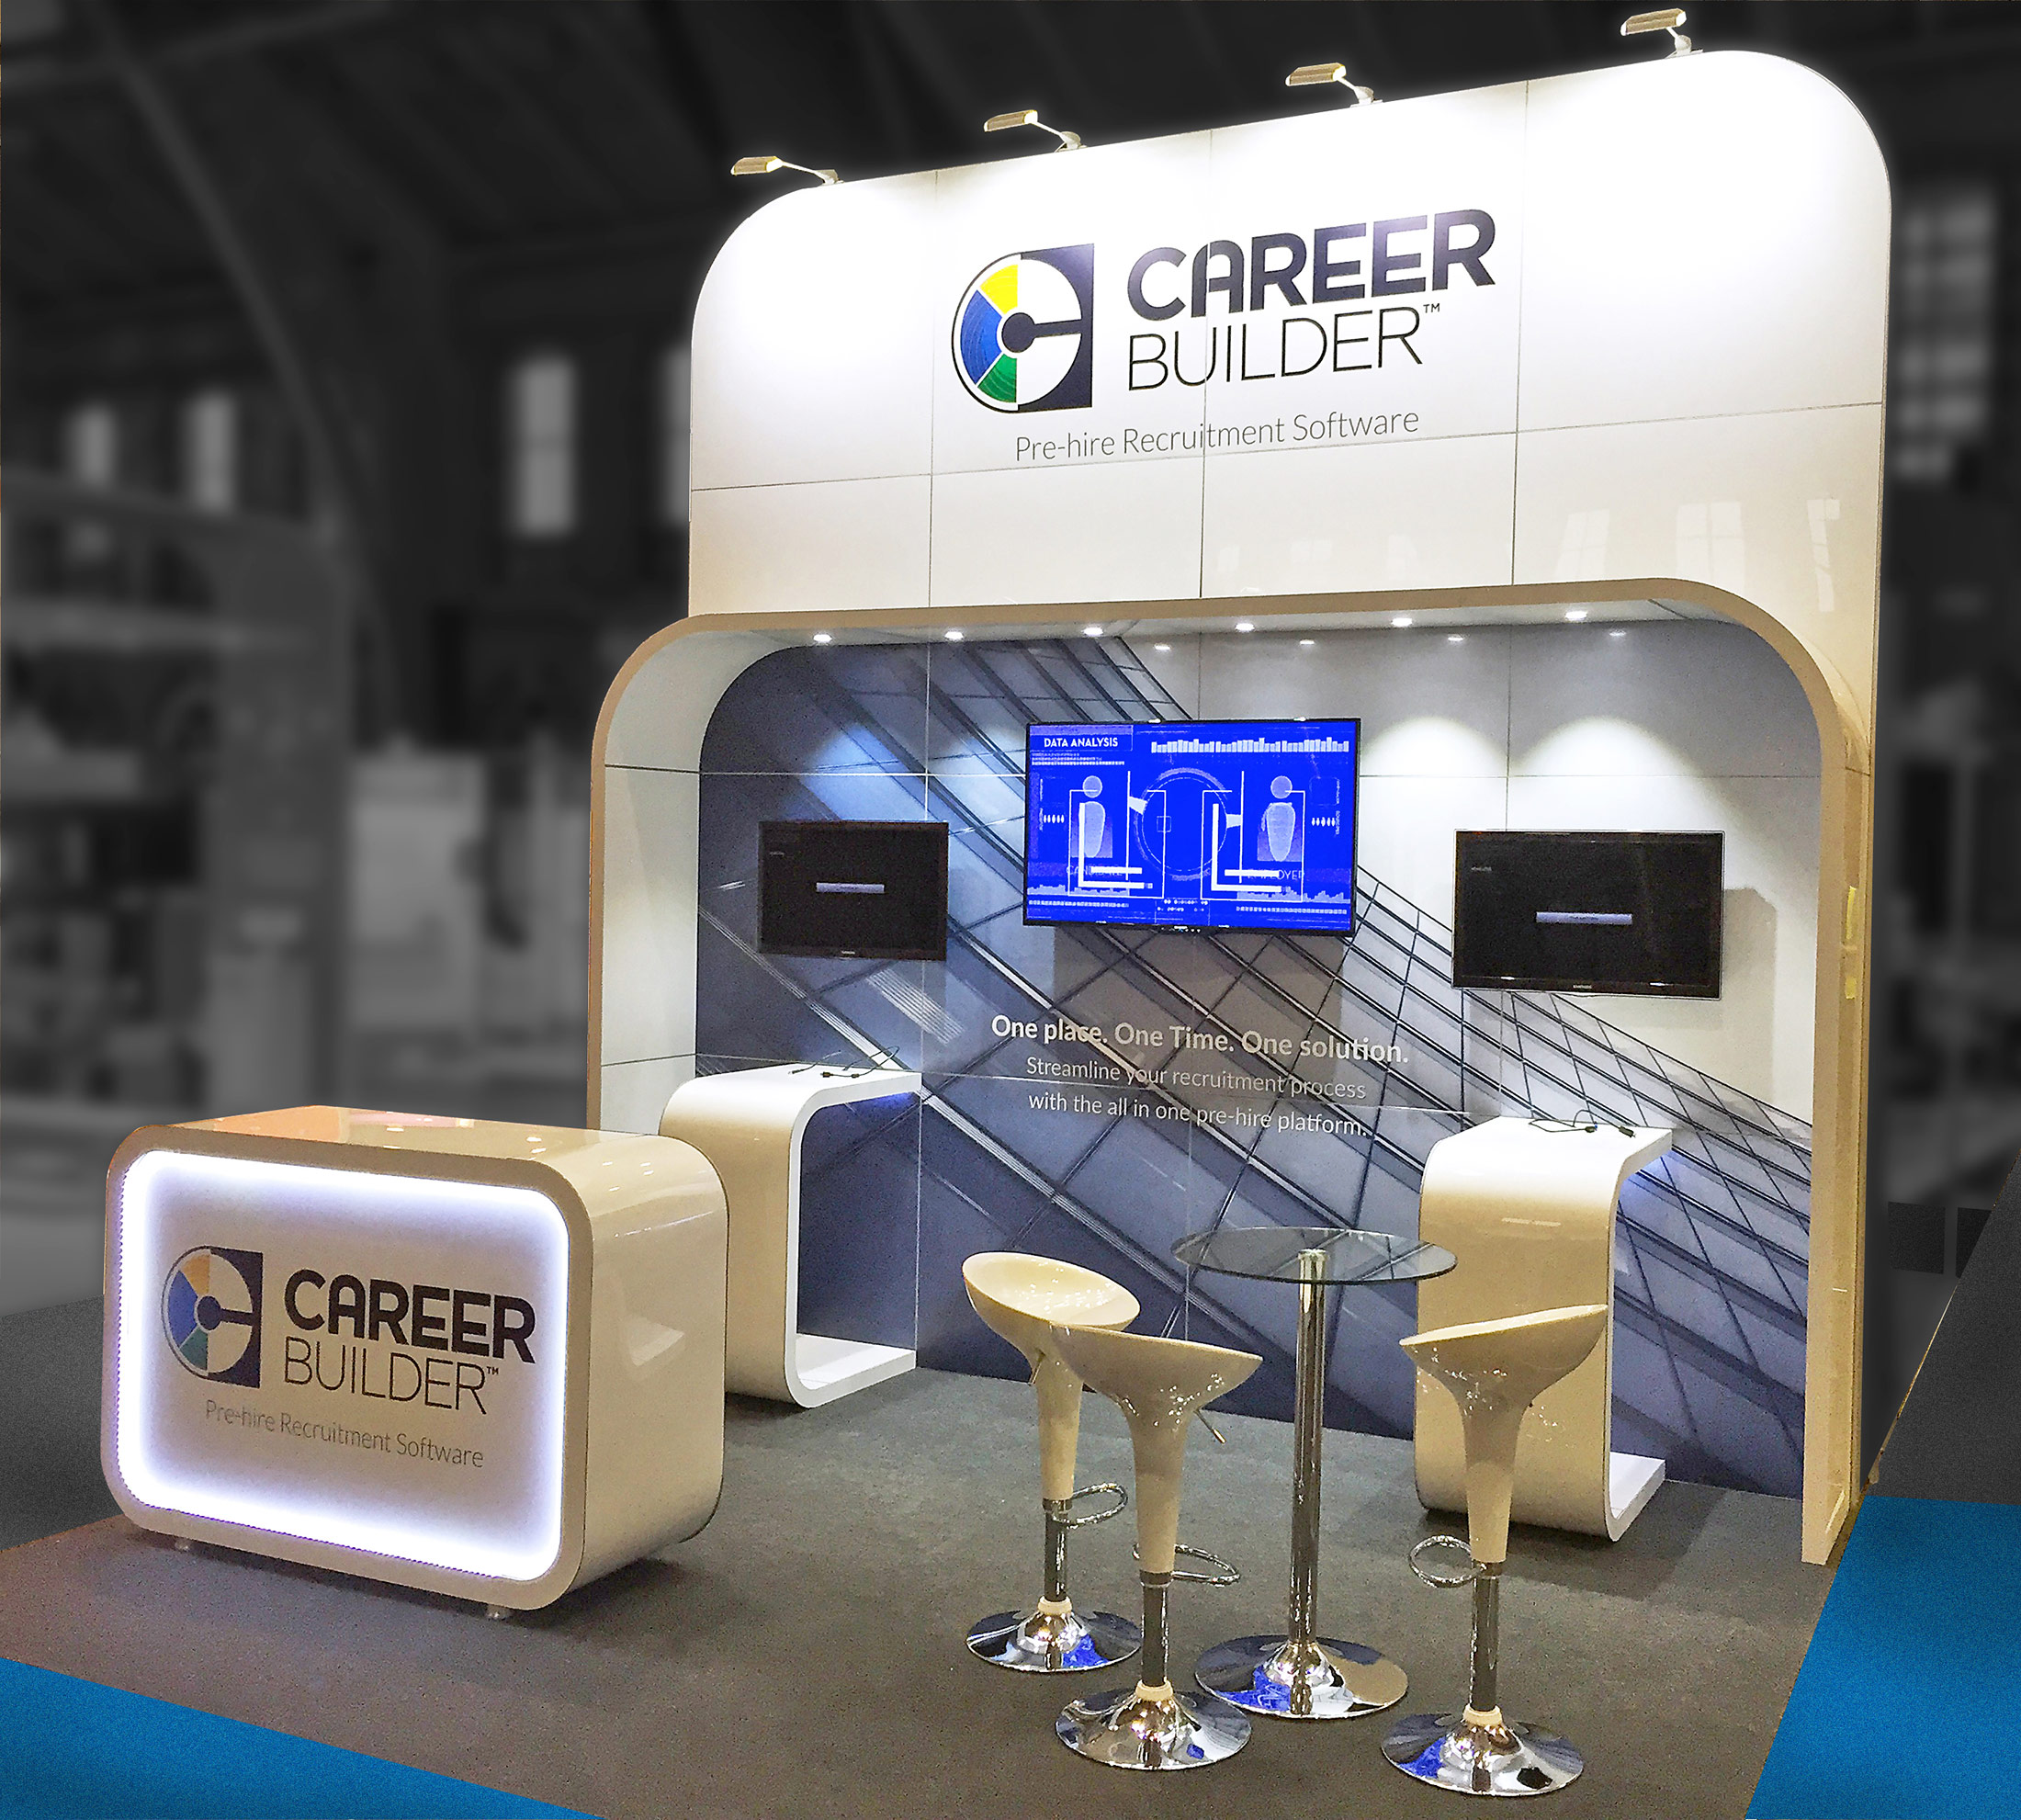 Exhibition Stand Hire Manchester : 4m x 3m custom built exhibition stand for career builder love expo